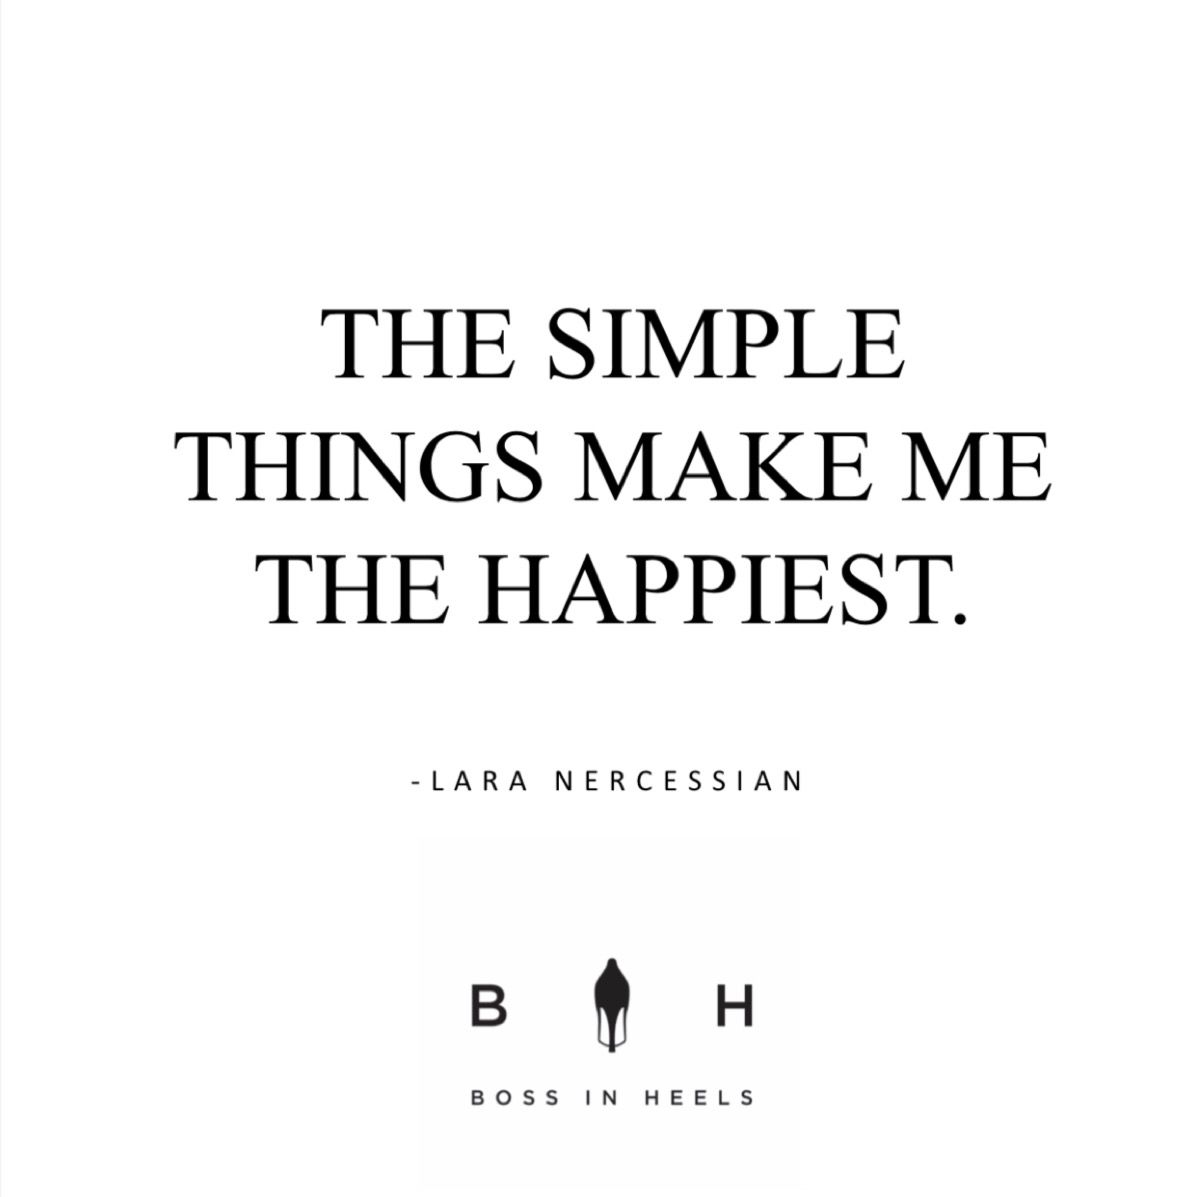 What Are The Simple Things Which Make You Happy Bihquotes With